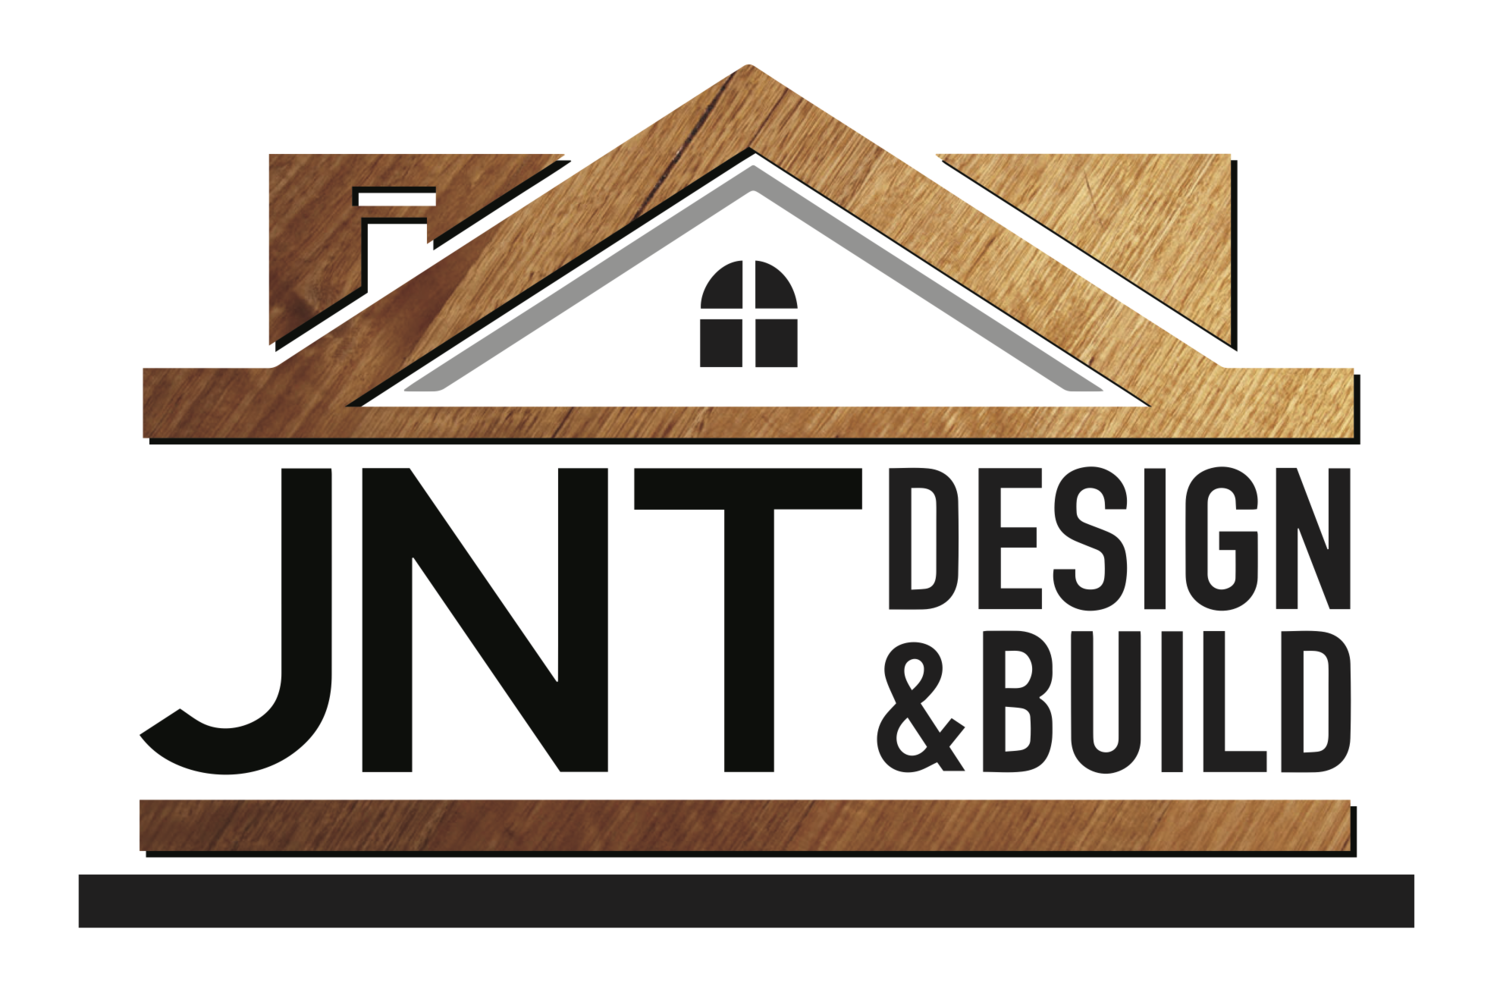 JNT Design & Build, LLC